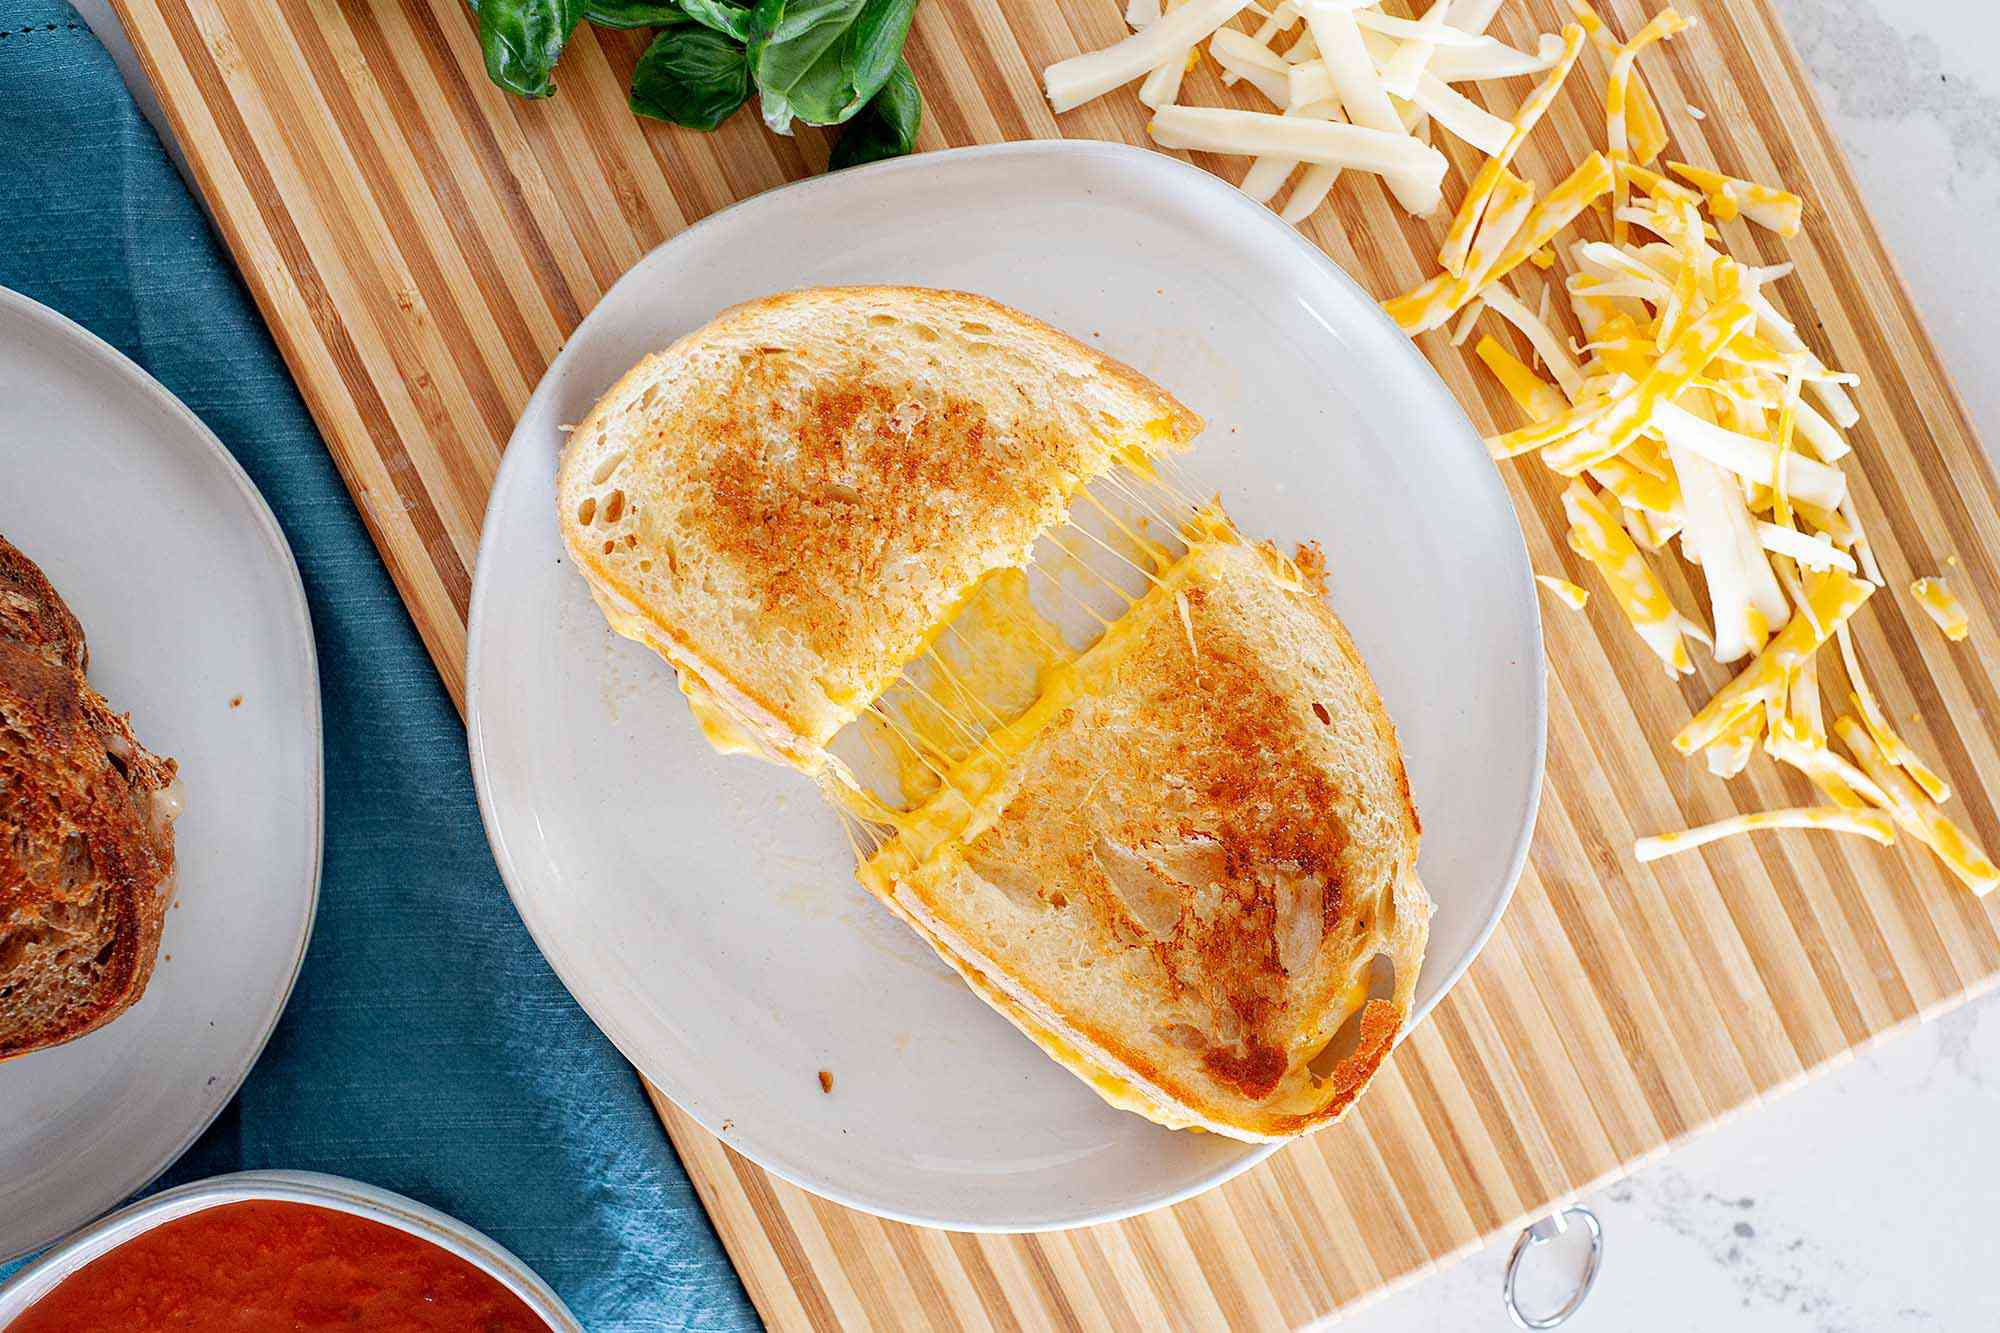 A grilled cheese sandwich cut in half on a plate with the cheese stretched between the two halves in oooey gooey goodness. There are shredded cheese bits strewn about and basil leaves on a cutting board nearby.